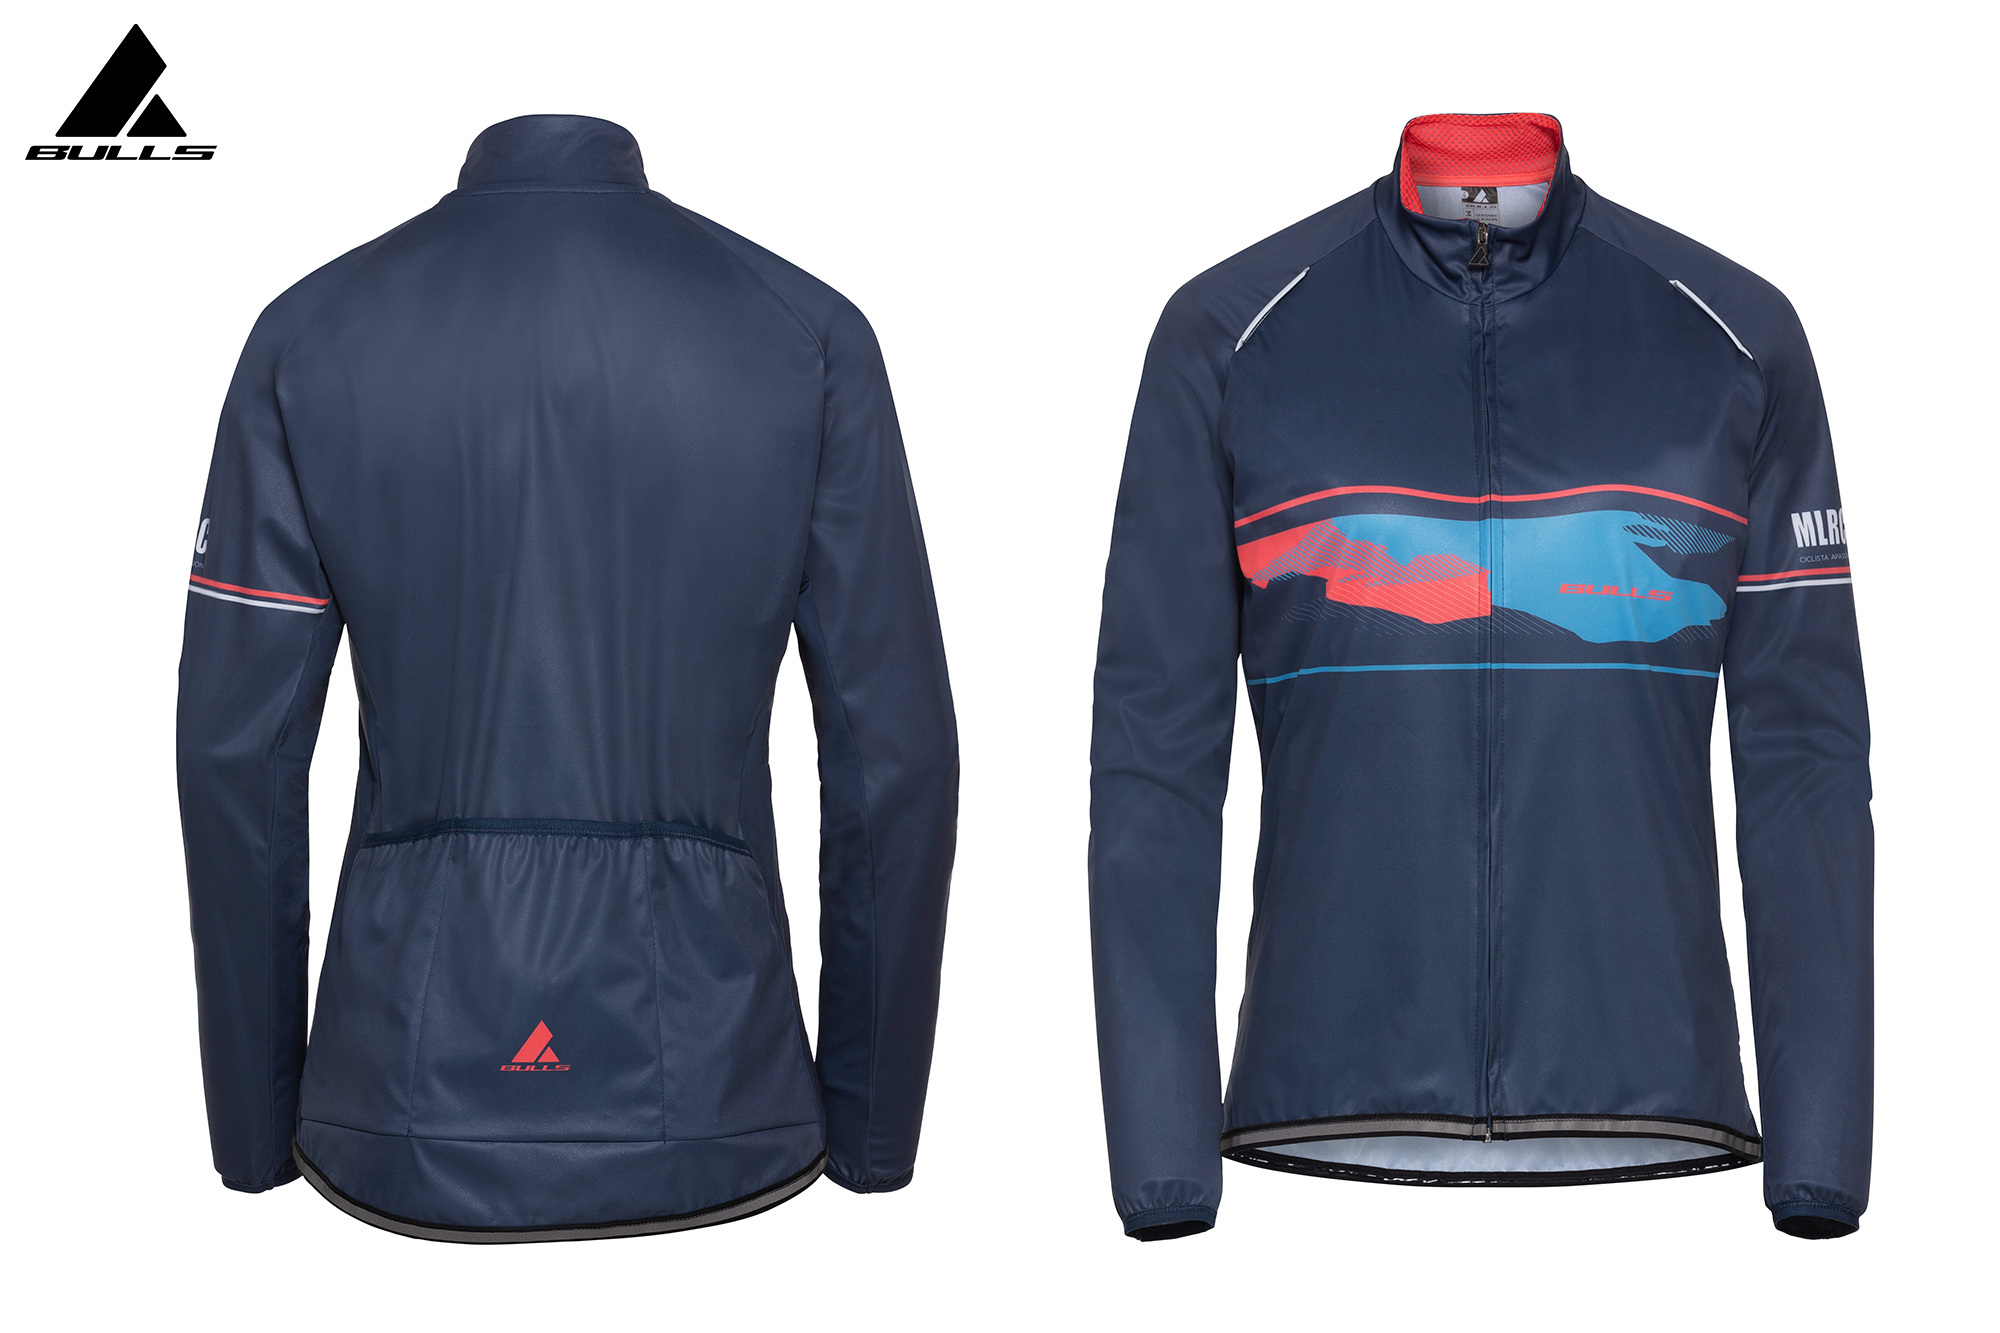 BULLS Damen Windjacke MLRCA Ltd.